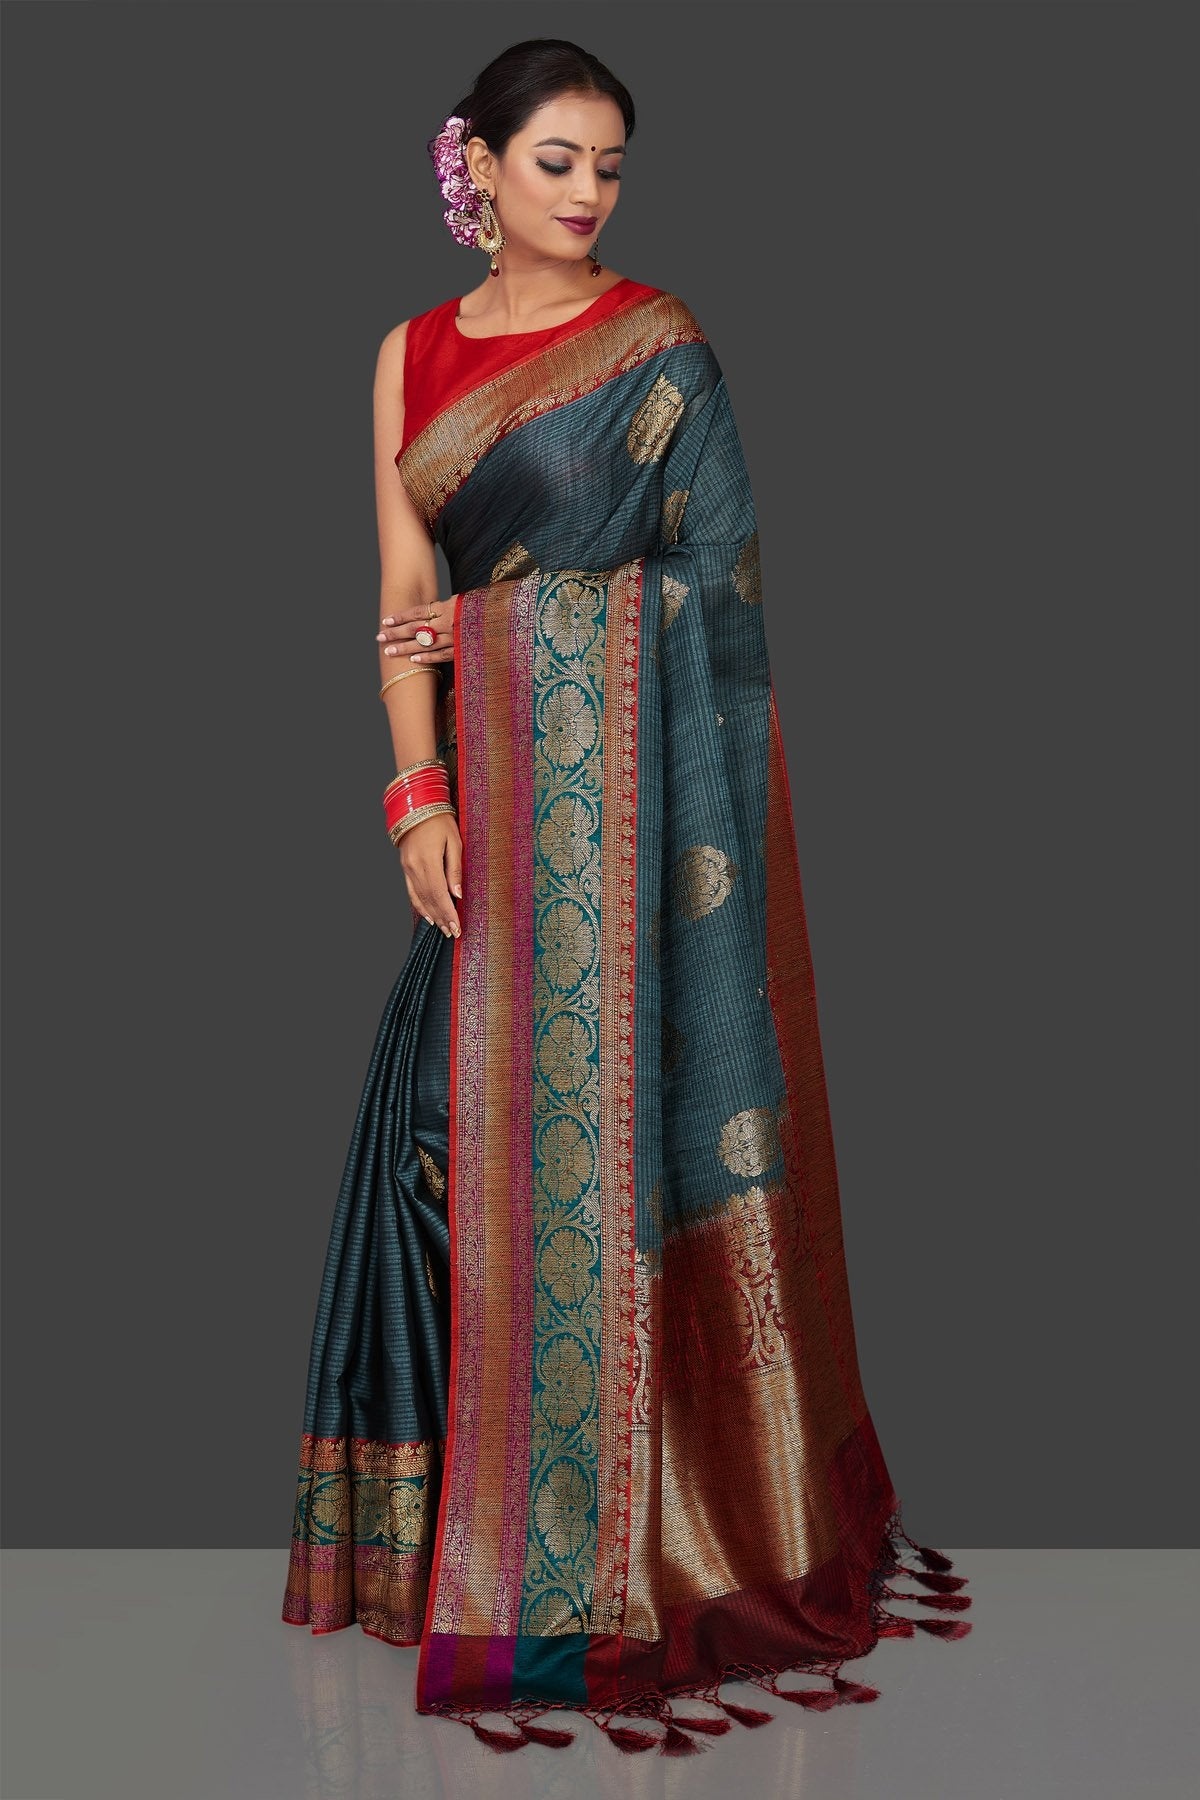 Buy beautiful steel blue striped tassar Banarasi sari online in USA with antique zari border. Garner compliments on weddings and special occasions with exquisite Banarasi sarees, handwoven silk sarees, tussar sarees from Pure Elegance Indian fashion store in USA.-front